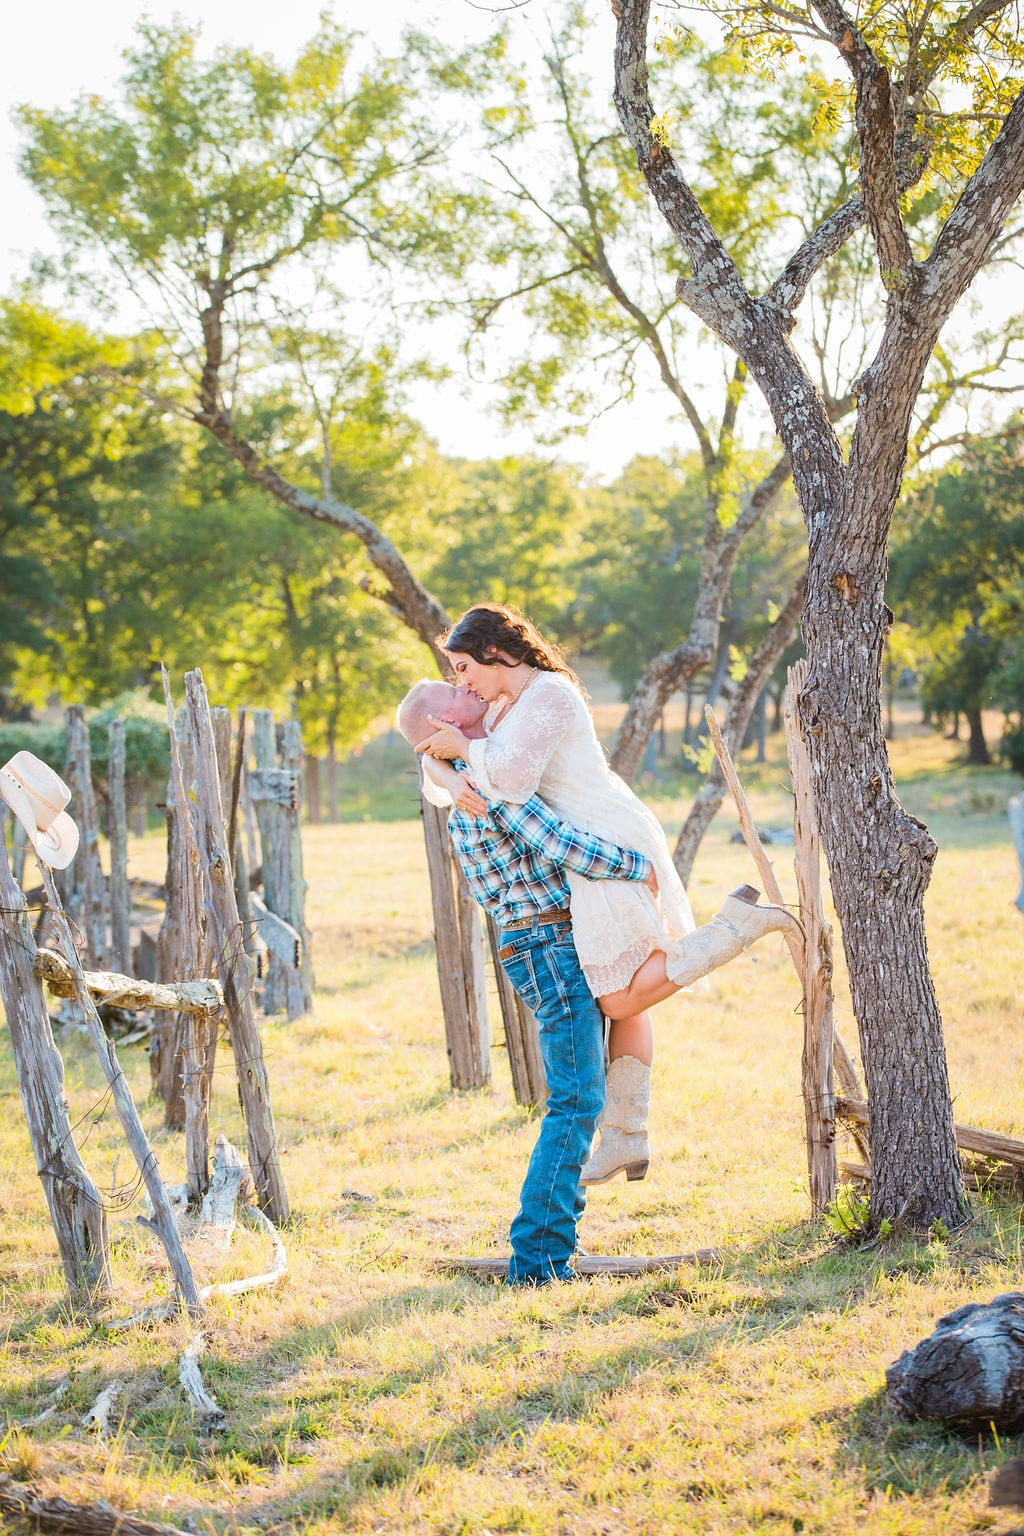 Tess -Lance Boerne, TX Engagement Portrait by the scale lift